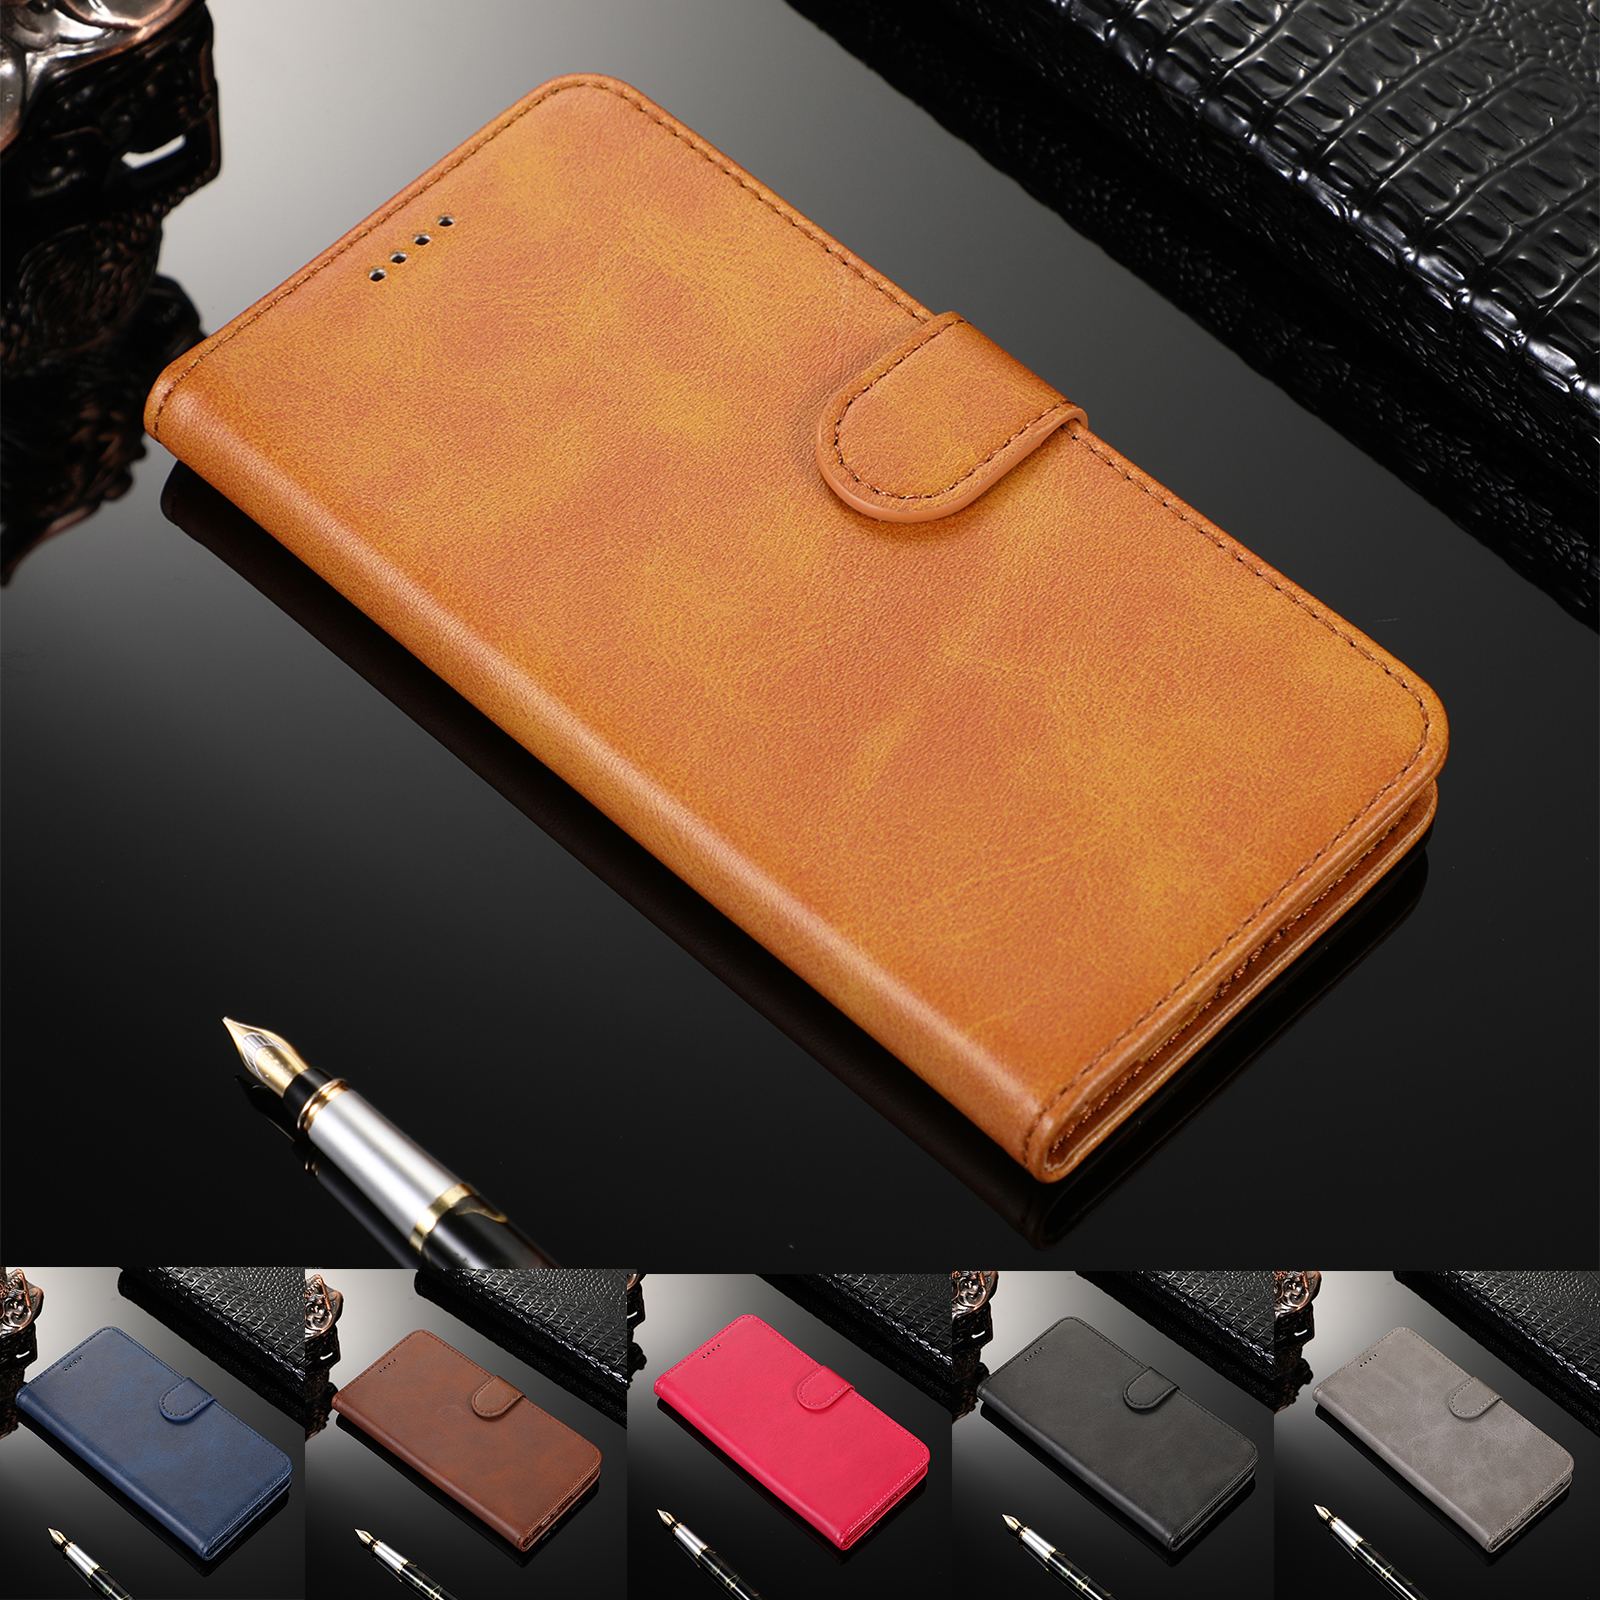 Luxury <font><b>Leather</b></font> <font><b>Case</b></font> For <font><b>Samsung</b></font> A50 A70 <font><b>A40</b></font> A20 A6 Plus A7 2018 <font><b>Flip</b></font> Wallet Funda For <font><b>Samsung</b></font> J4 J6 Plus J330 J530 J730 Coque image